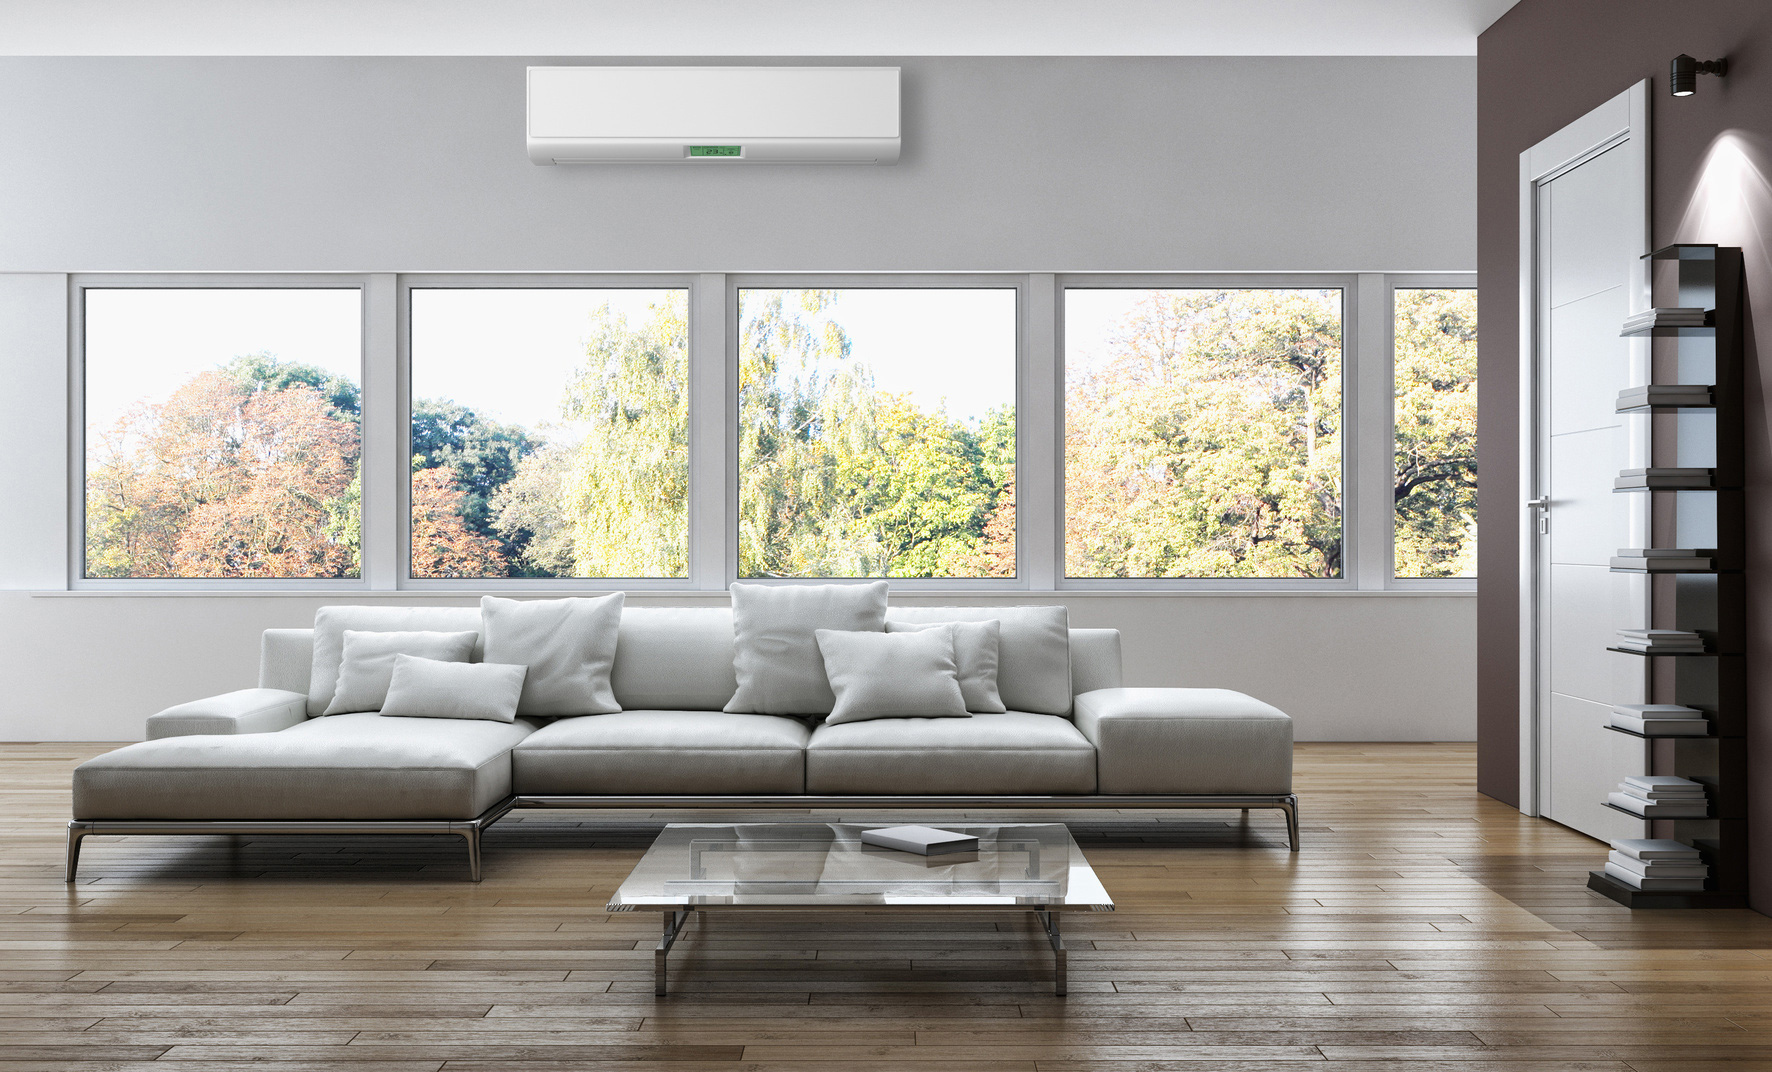 #877C44 Best Energy Efficient And Super Cooling Air Conditioner  Best 10853 Air Conditioning Places photos with 1772x1072 px on helpvideos.info - Air Conditioners, Air Coolers and more